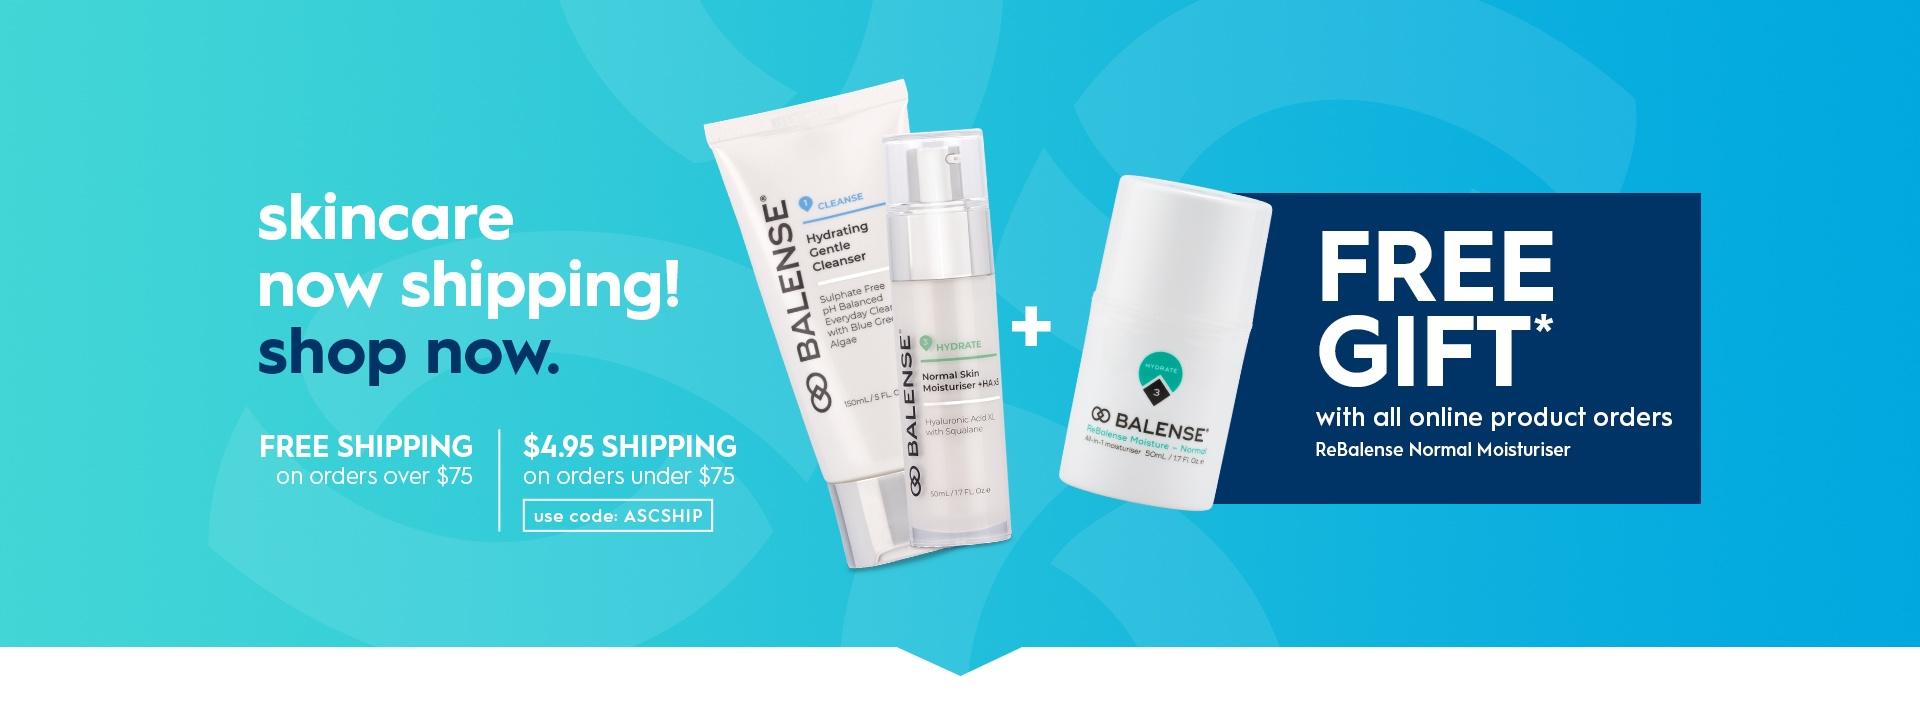 Balense skincare offer